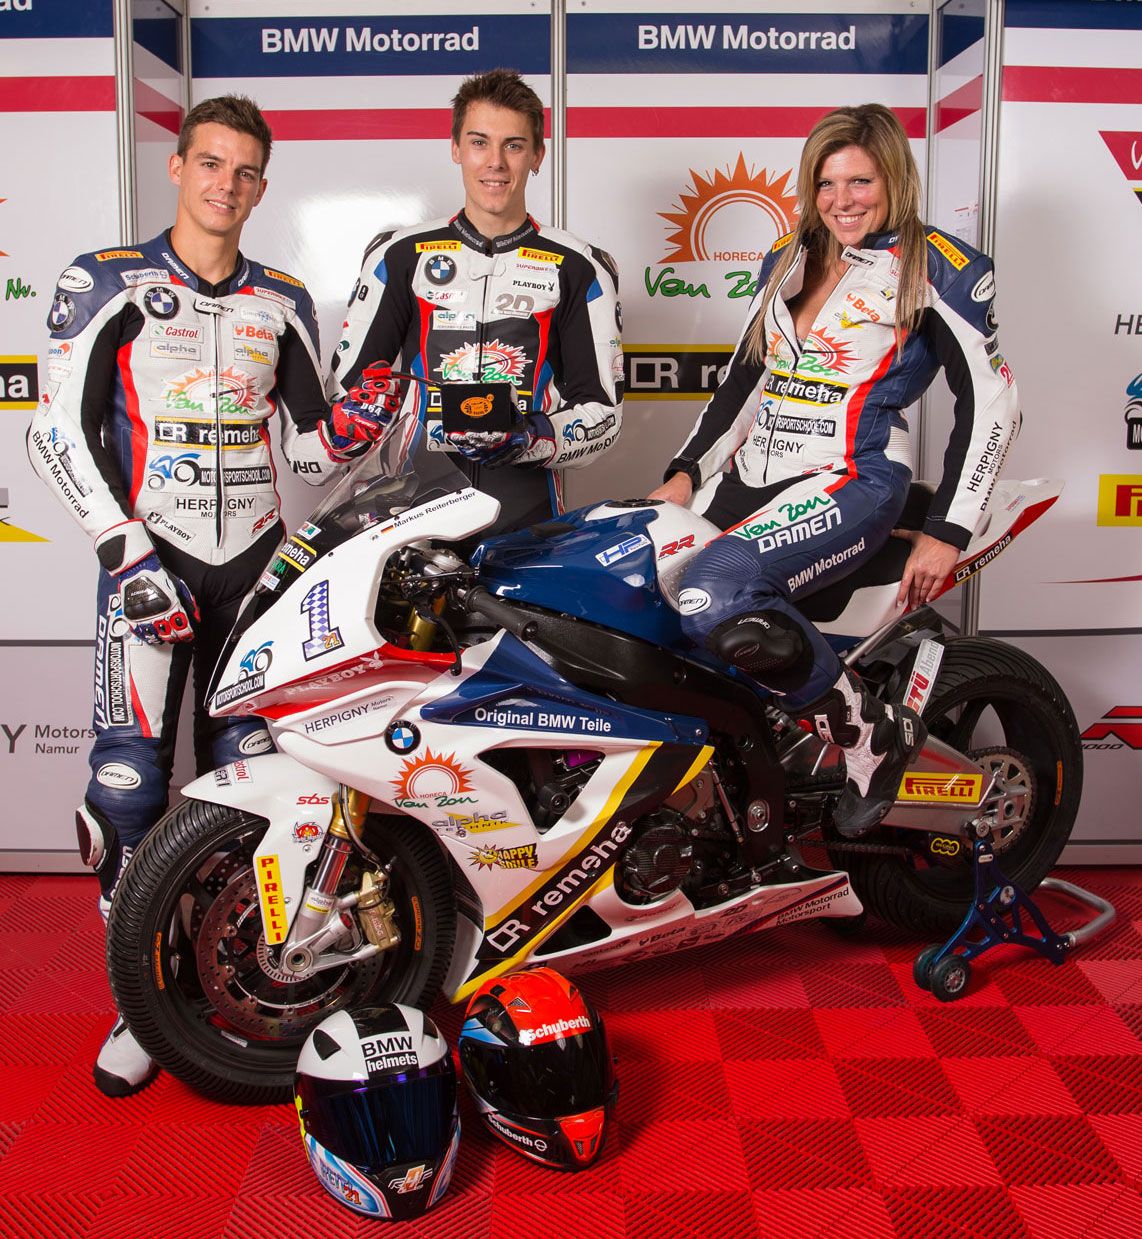 Van Zon Remeha BMW Superbike Teams, IDM Siegerteam 2013